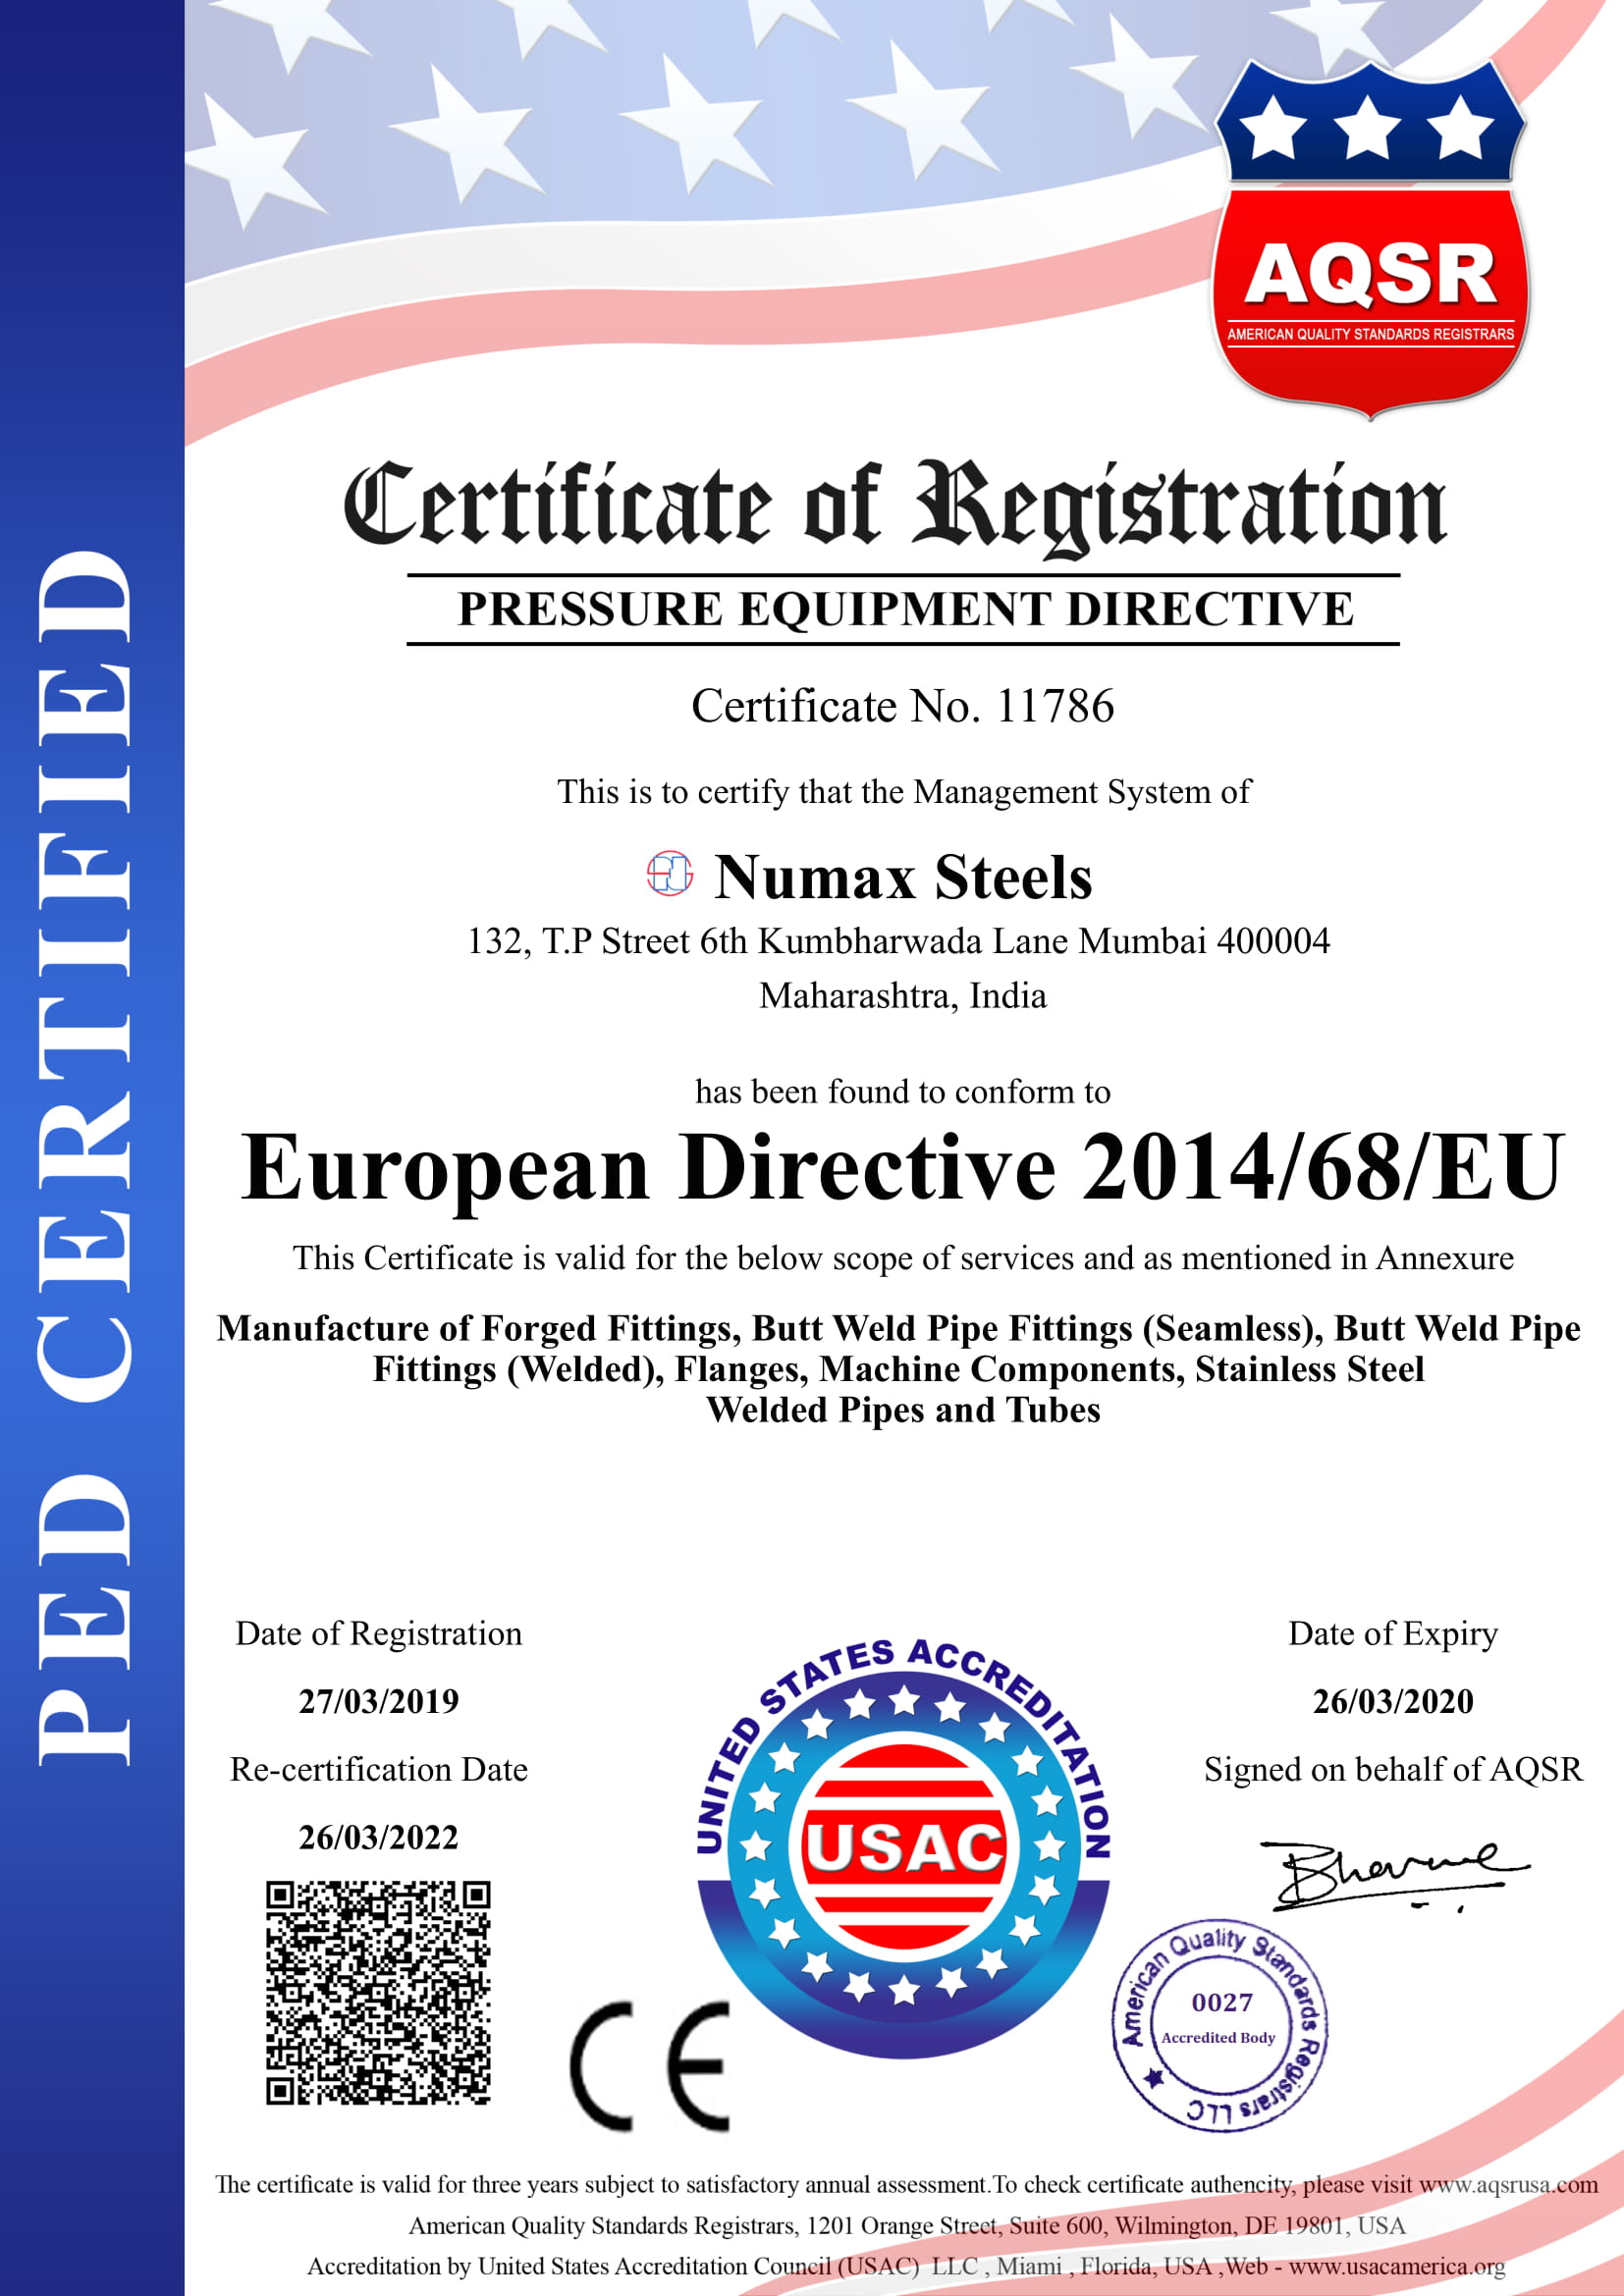 Numax Steels PED